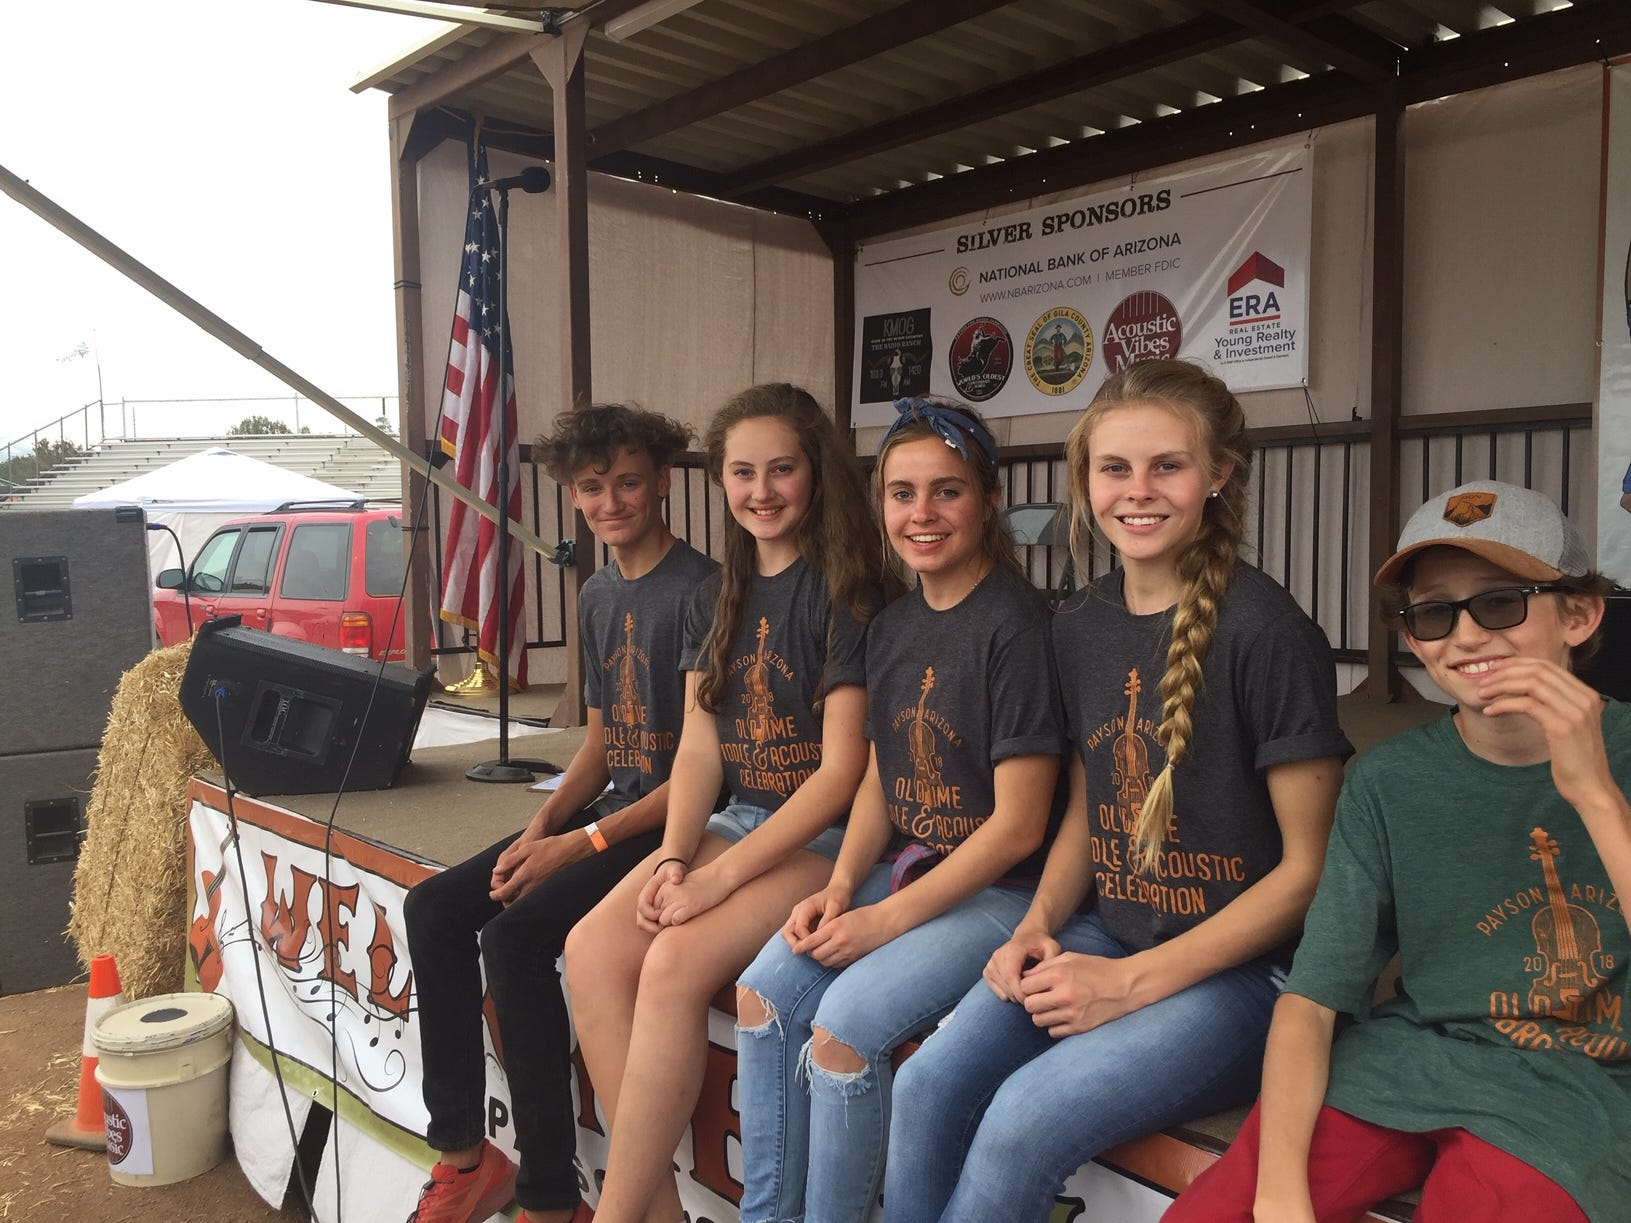 Copper Wren (left to right): Will MacDonald, 17; Alivea Addleman, 14; Ava Addleman, 18; Angel Addleman, 17; Lee MacDonald, 14.